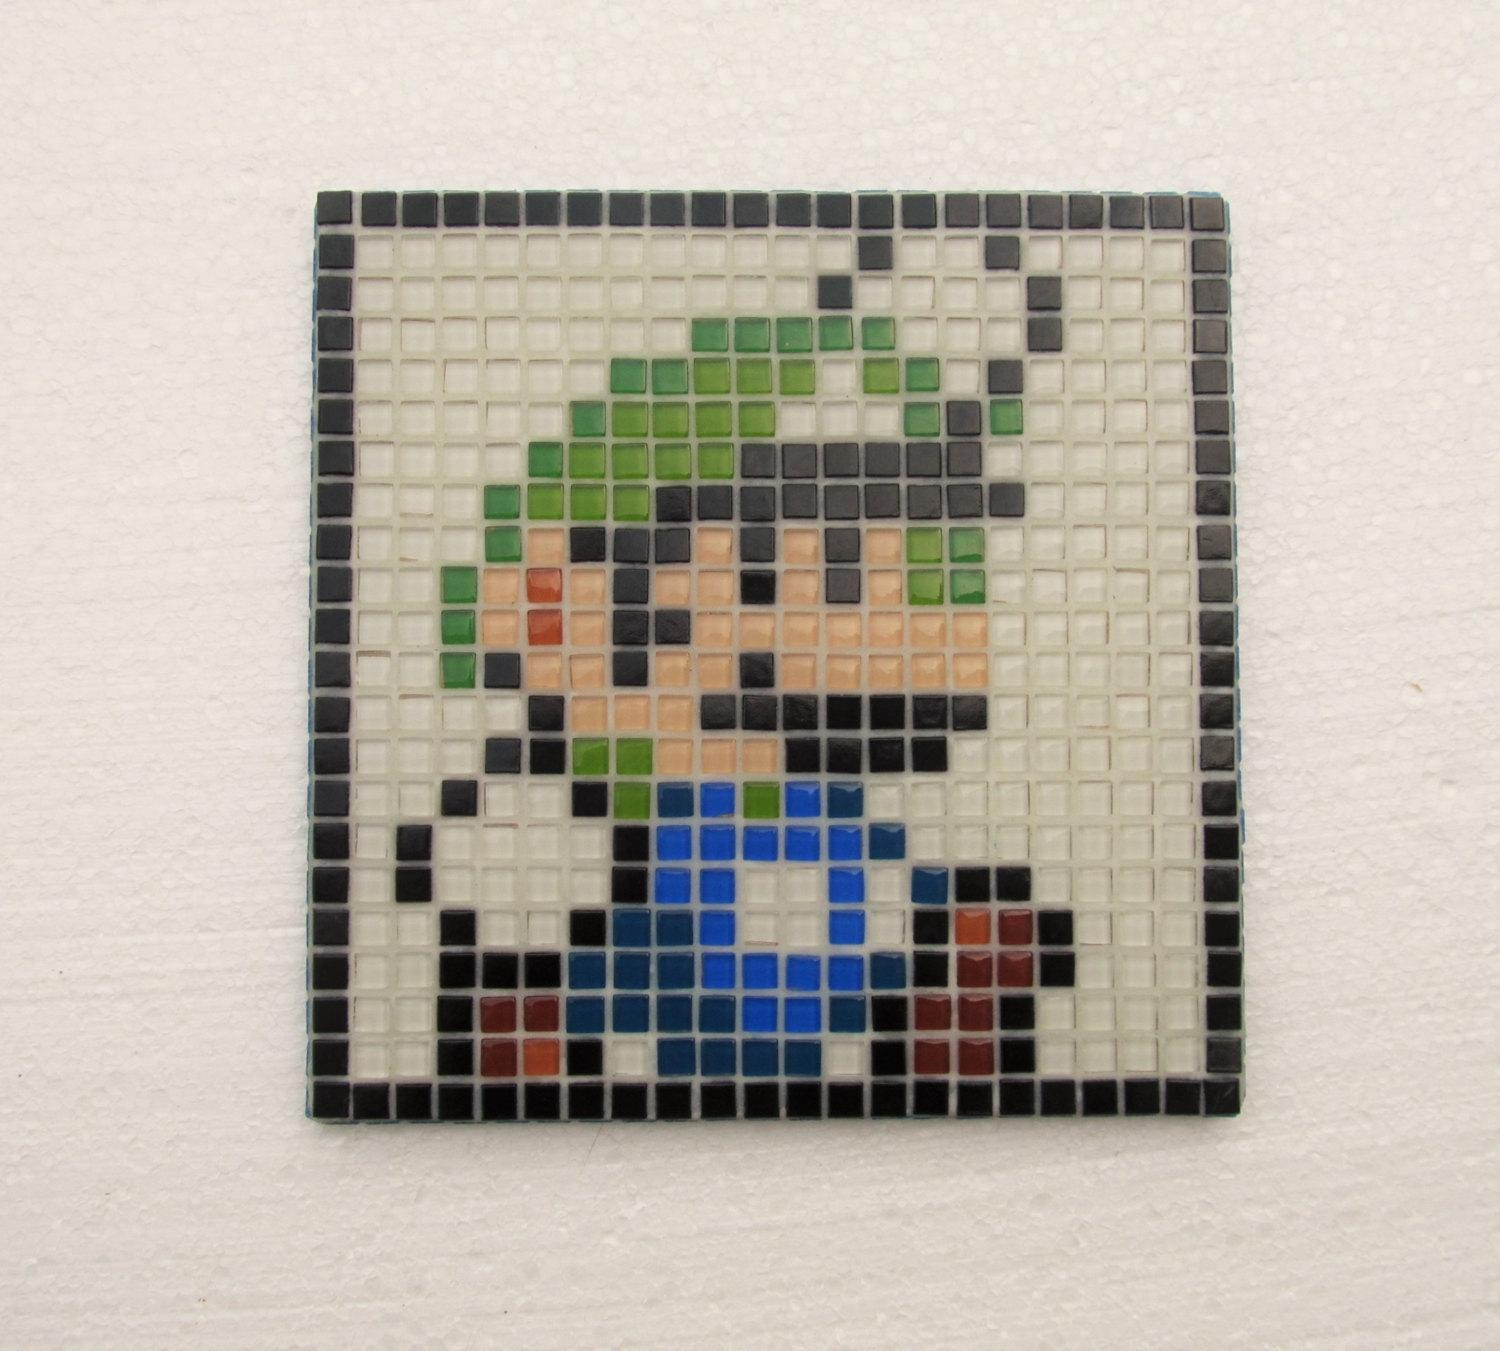 Super Mario World Handmade Mosaic Wall Art Luigi Glass Intended For Pixel Mosaic Wall Art (Image 14 of 20)